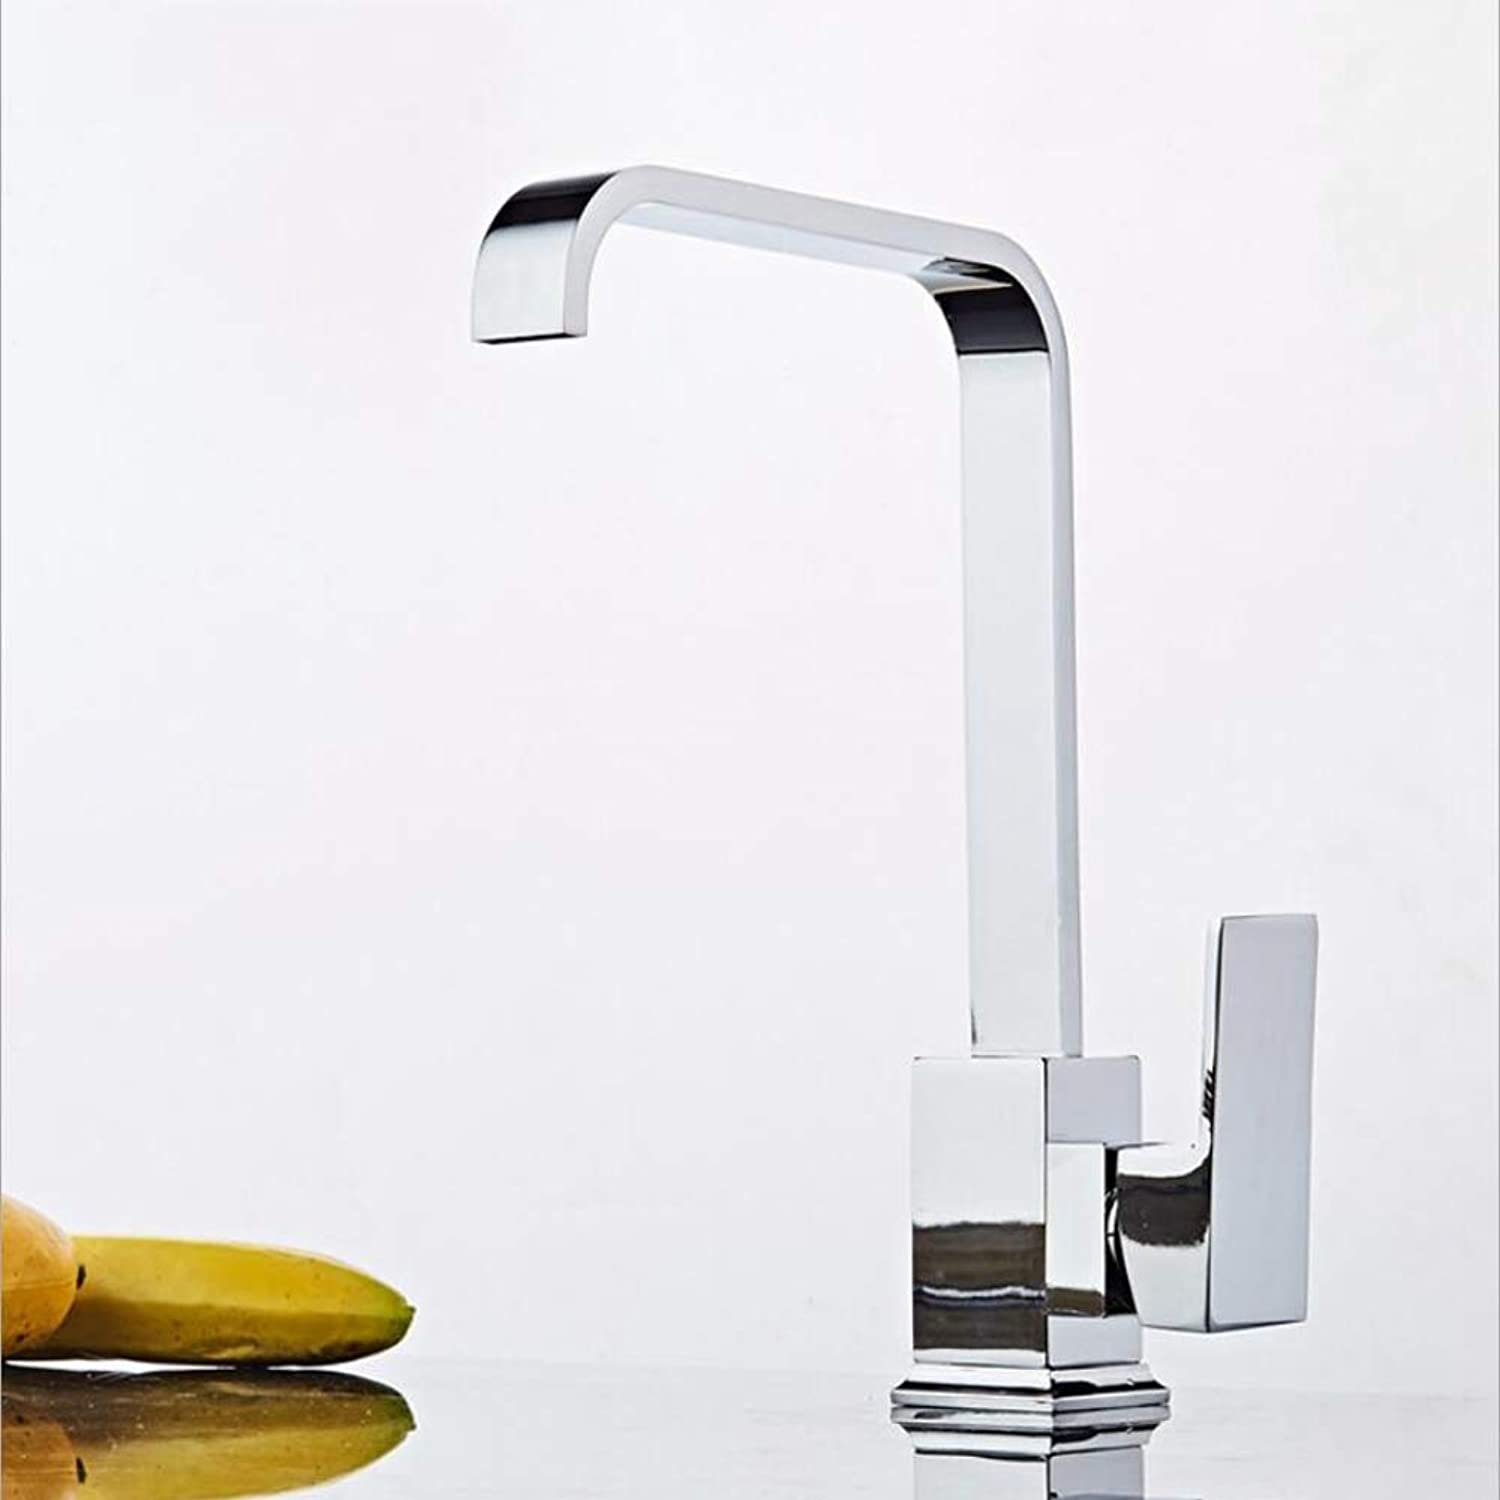 BFDMY Wivel Spout Leadless Square Innovative Classic Kitchen Sink Mixer Tap plating Single Hole Single Handle Hot Cold Taps,SquareFlatTubeSilverFaucet